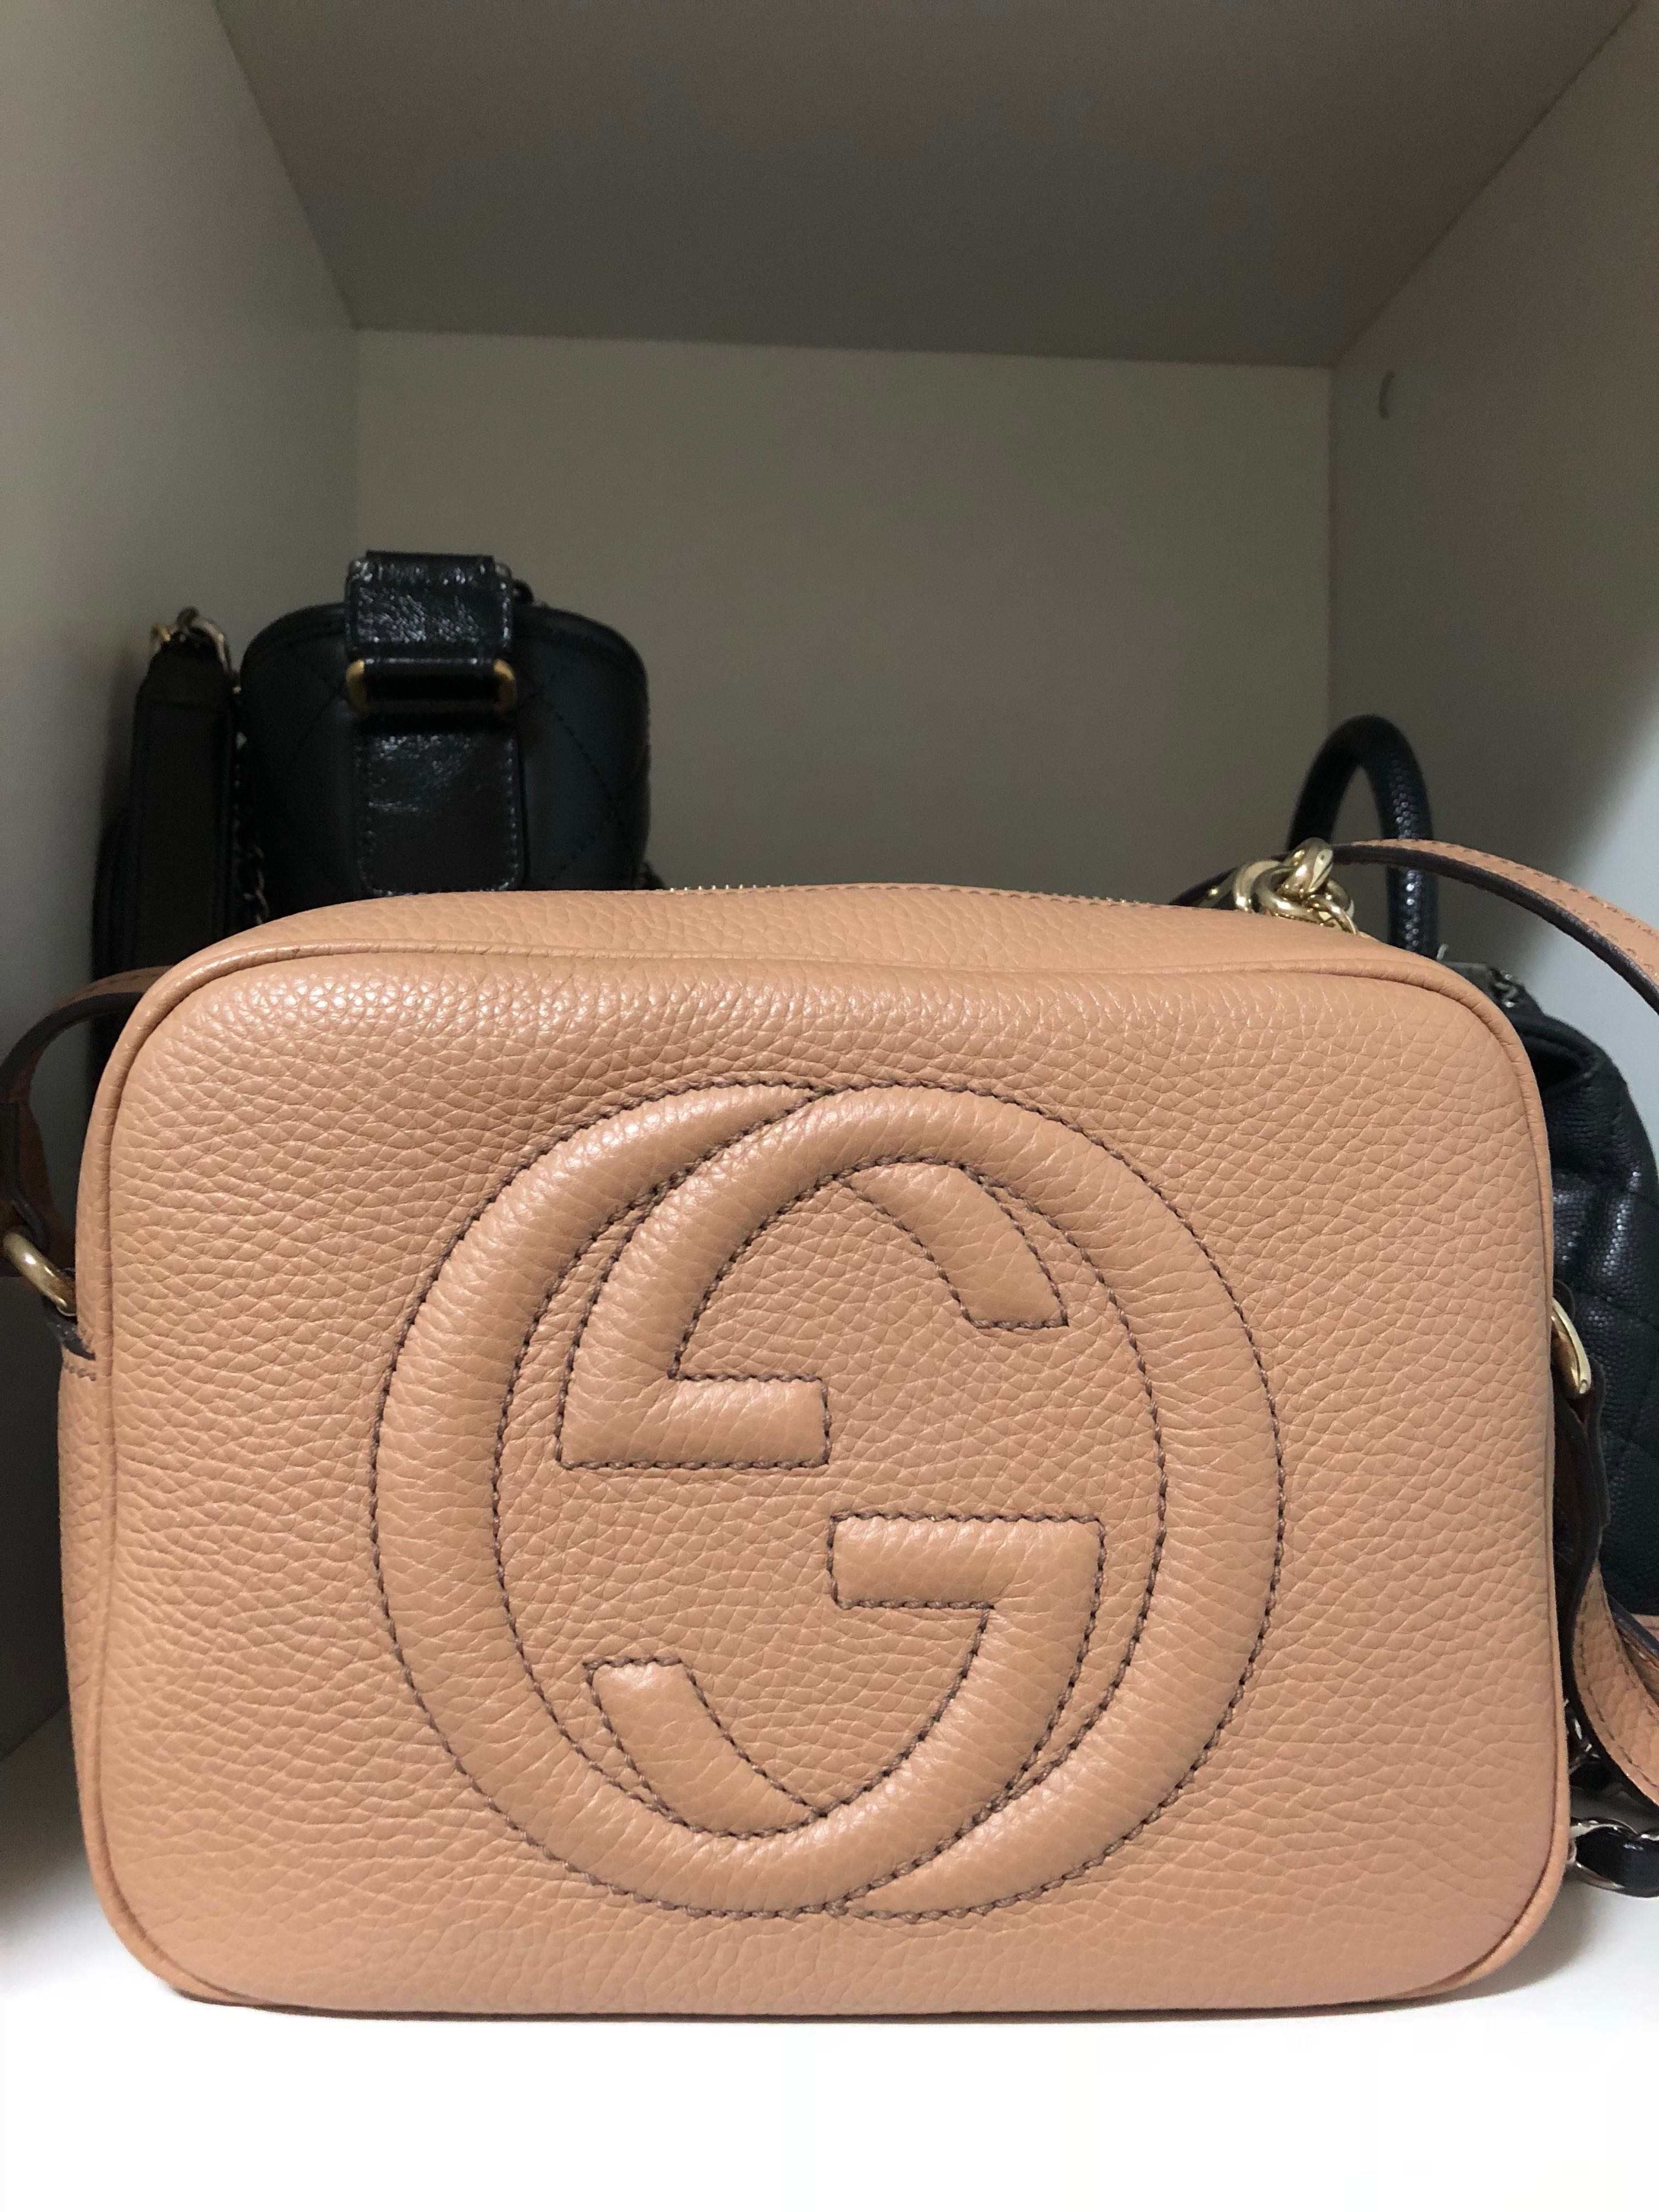 cd074016d Gucci Soho Disco Bag, Luxury, Bags & Wallets, Sling Bags on Carousell